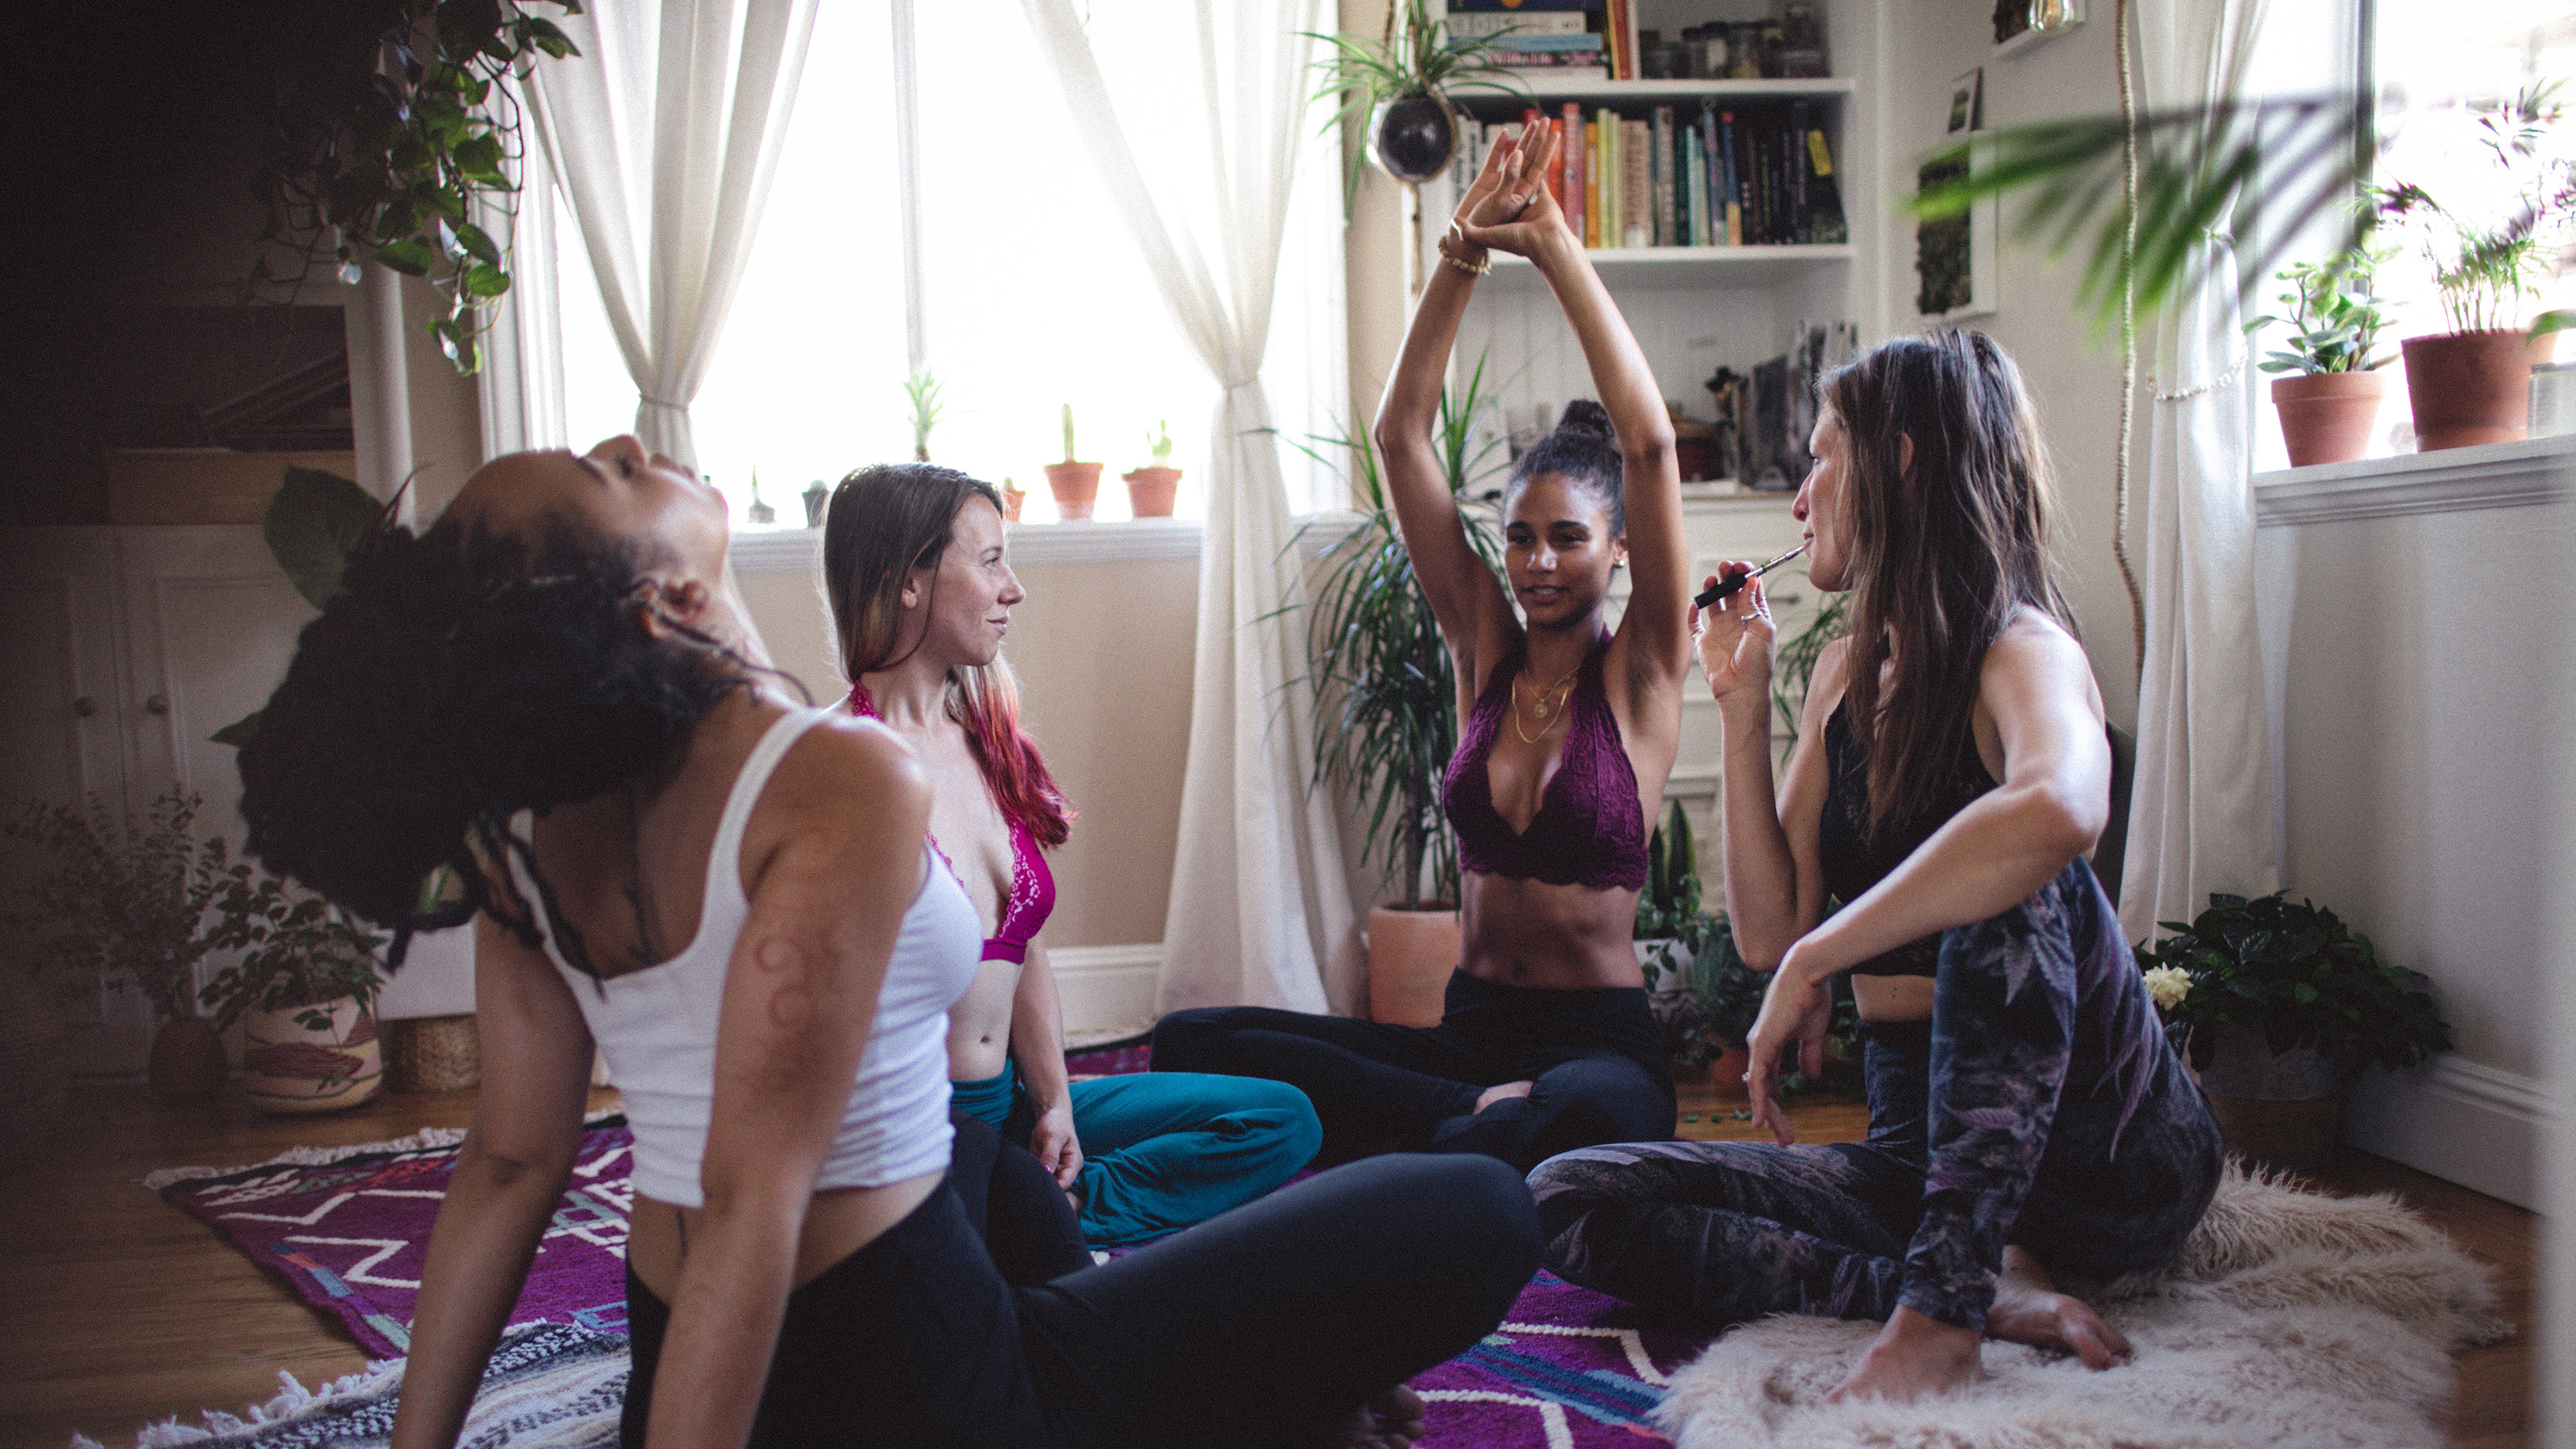 How Could Cannabis Enhance Your Yoga Flow?